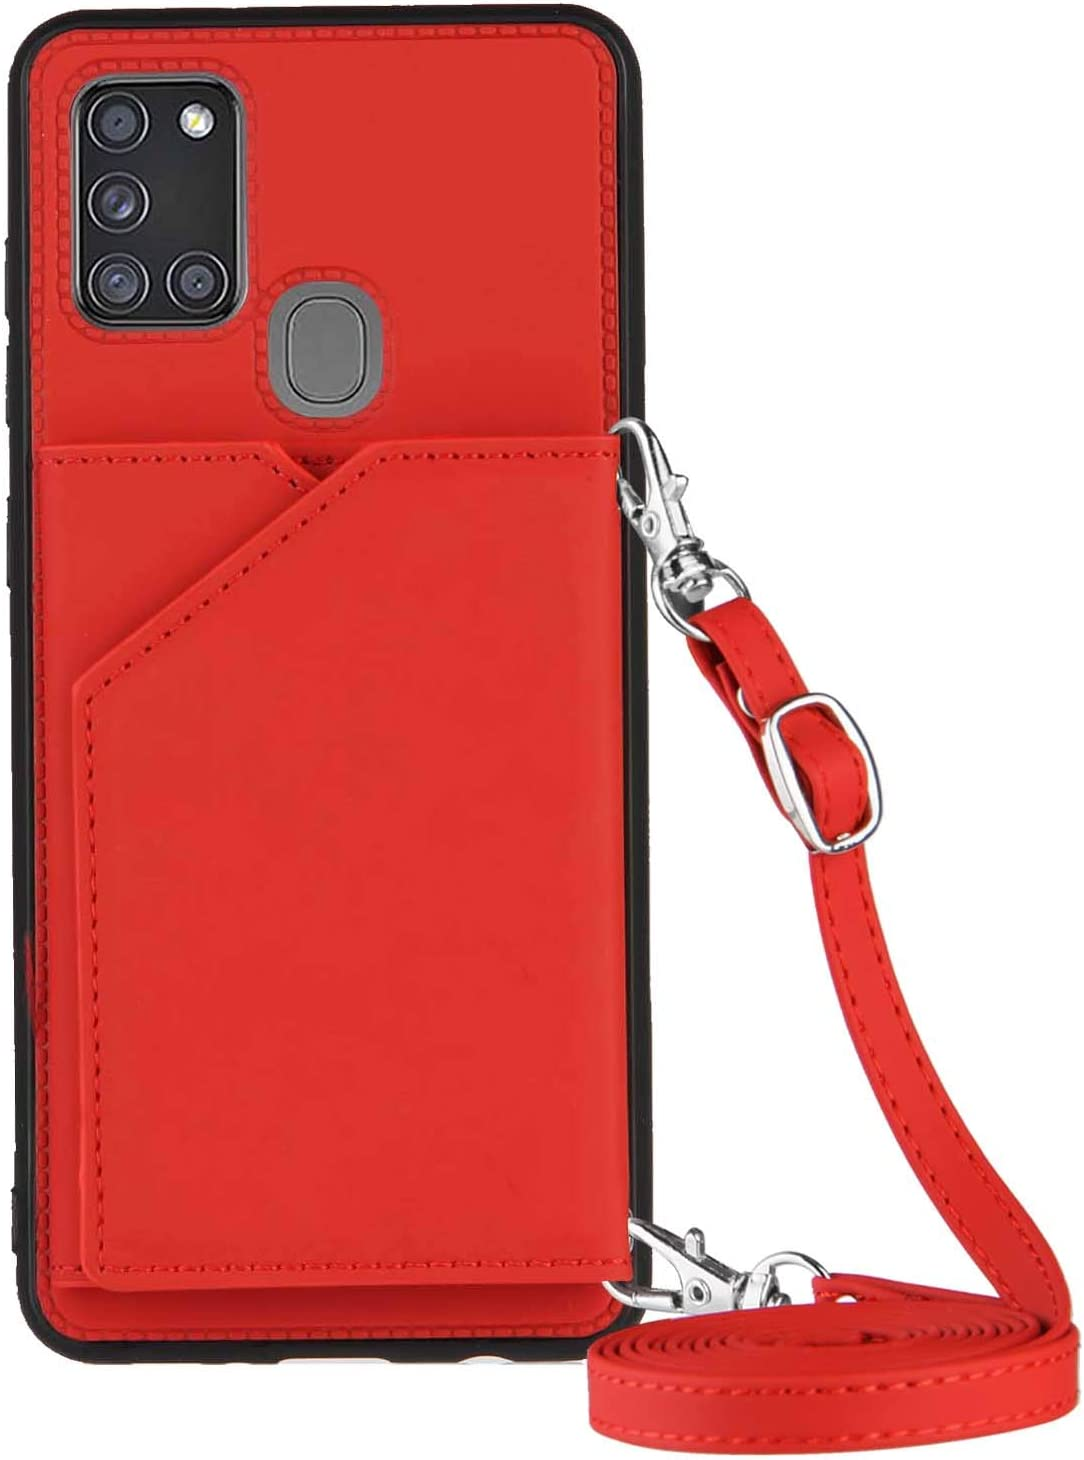 Galaxy A21S Wallet Case for Samsung A21S Lanyard Case, Shockproof Stand Bumper Cover Cross-Body Girly Case (Red)